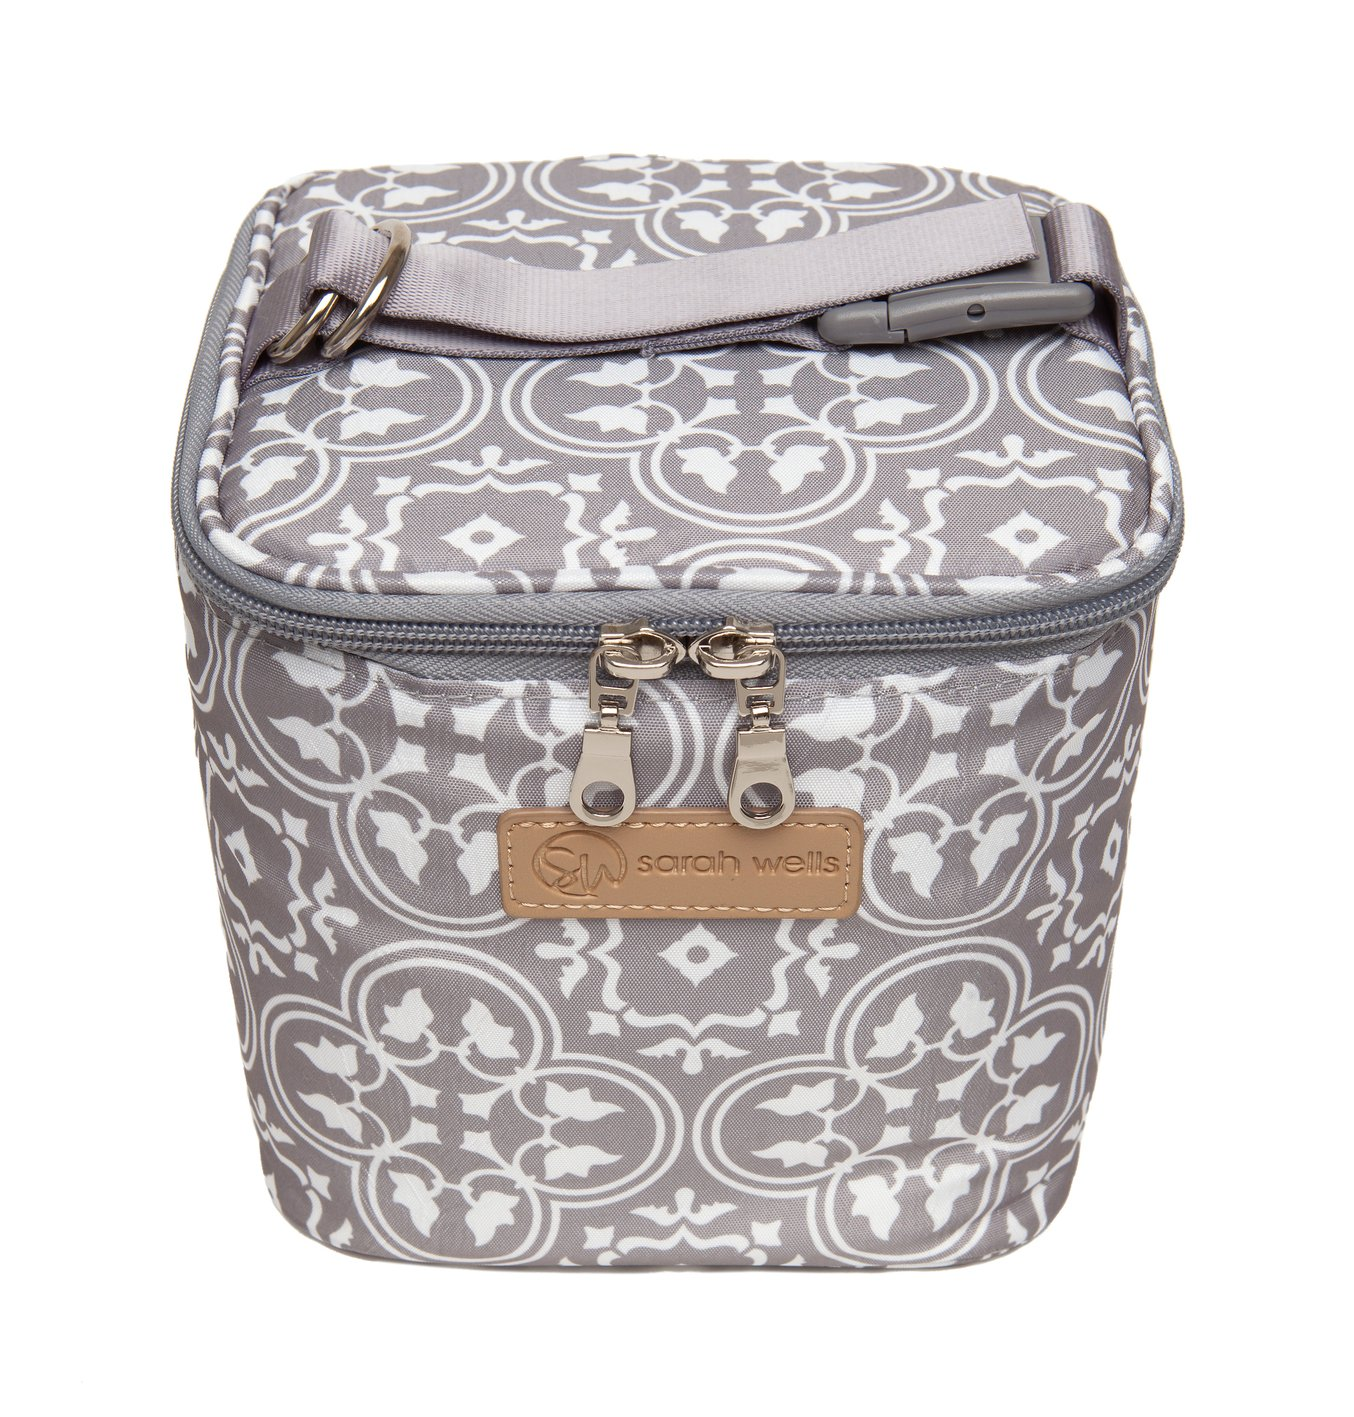 Sarah Wells Cold Gold Cooler Bag + Ice Pack (Vintage)